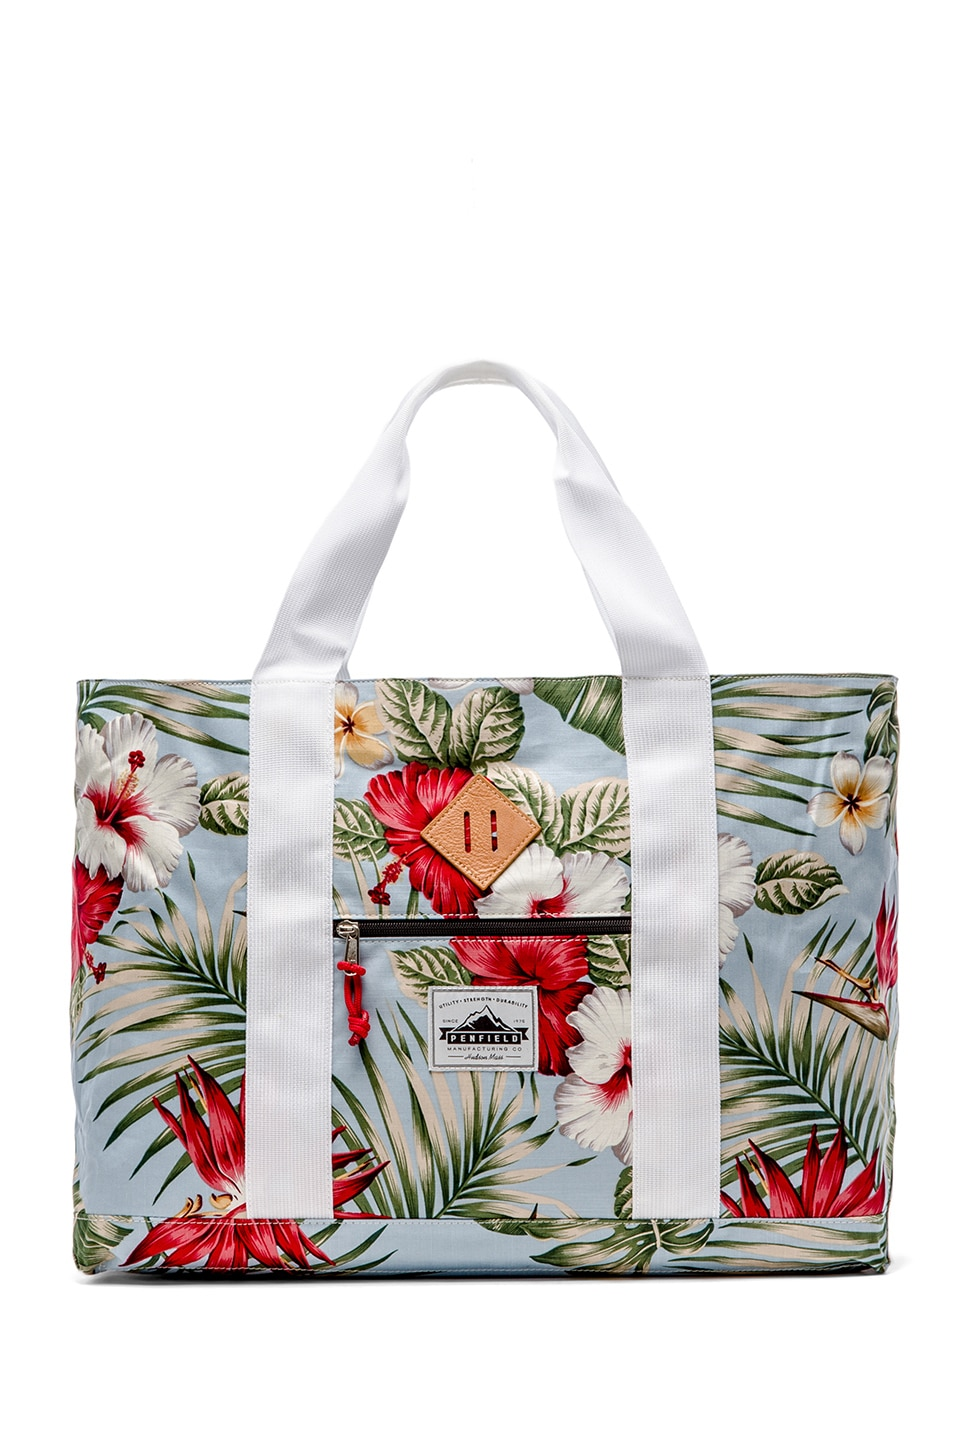 Penfield POLIS Patterned Tote Bag in Palm Print